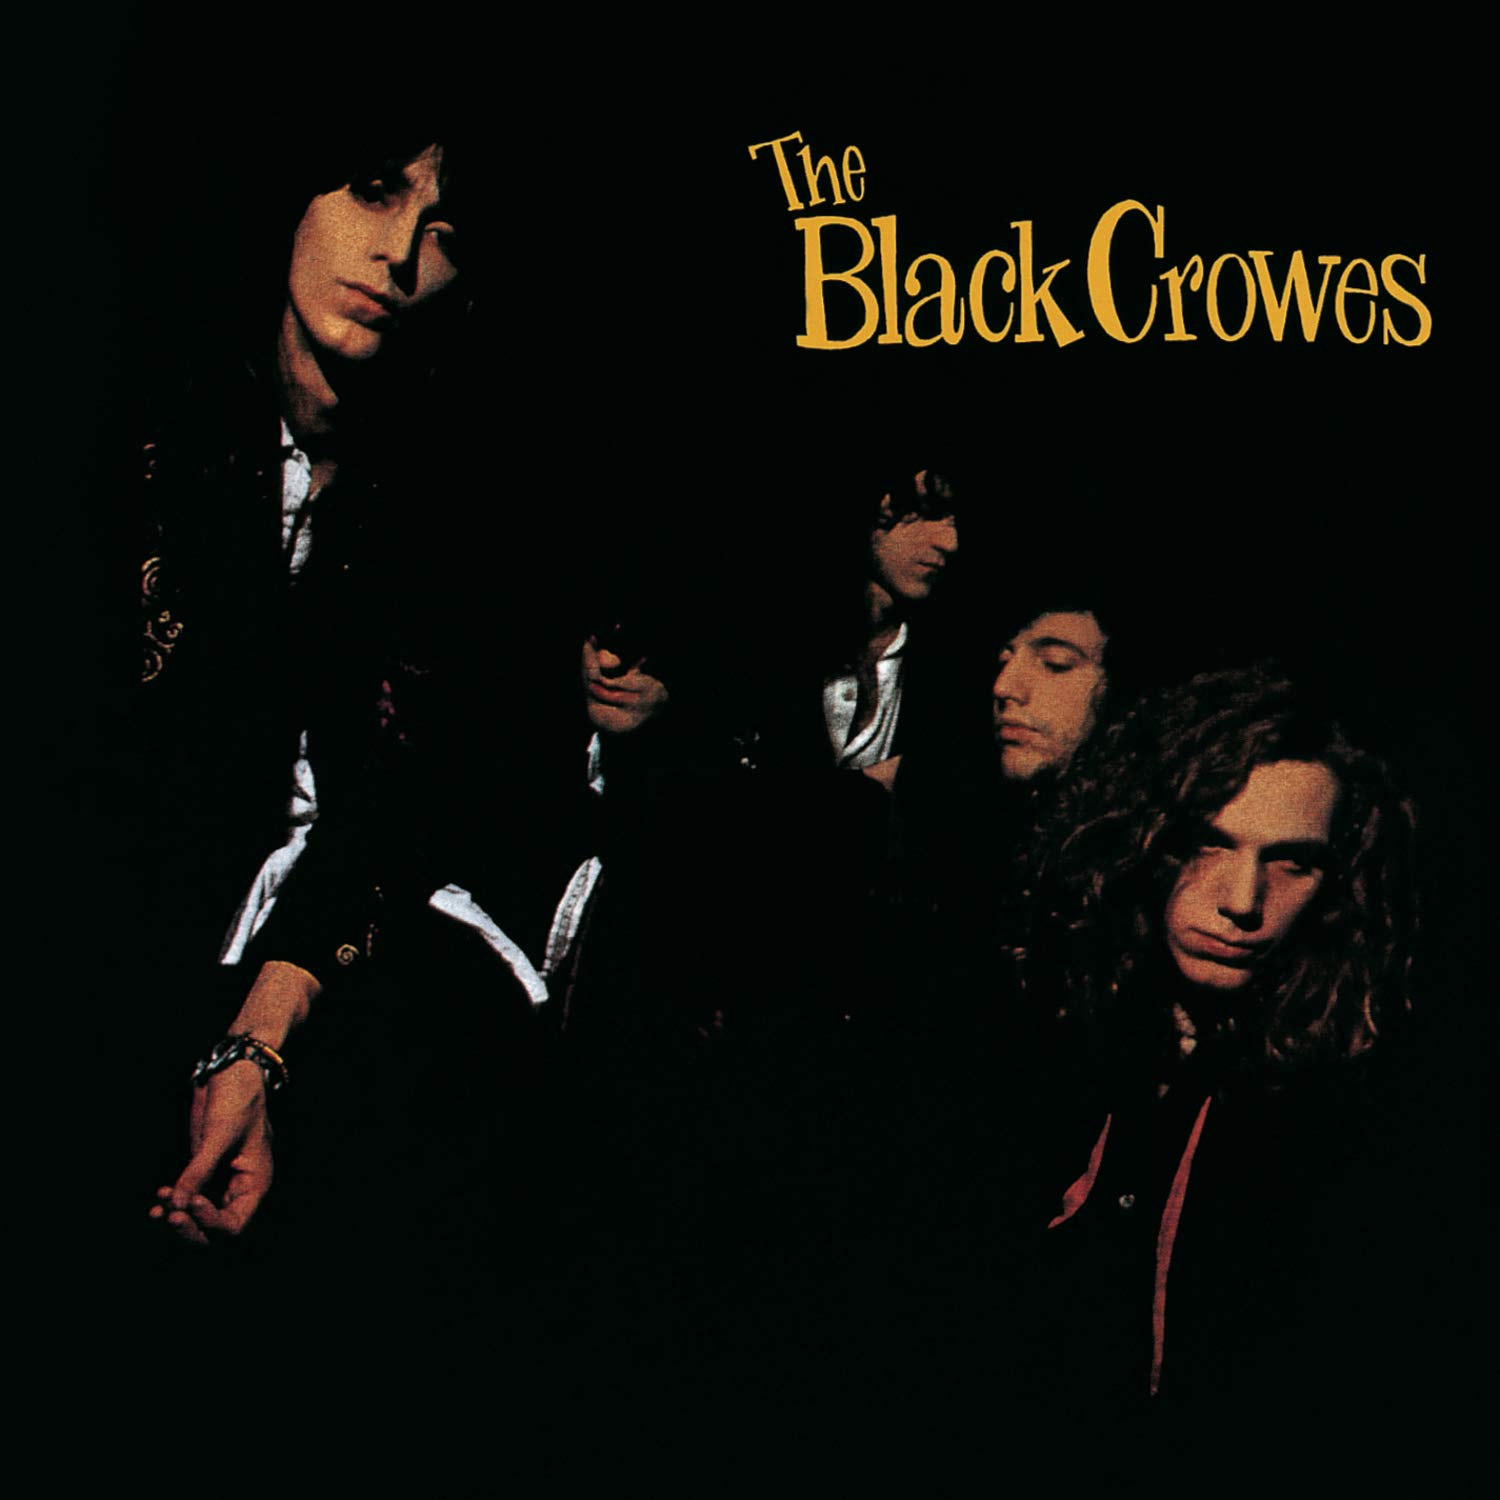 50 Years, 50 Albums 1990: The Black Crowes 'Shake Your Money Maker'